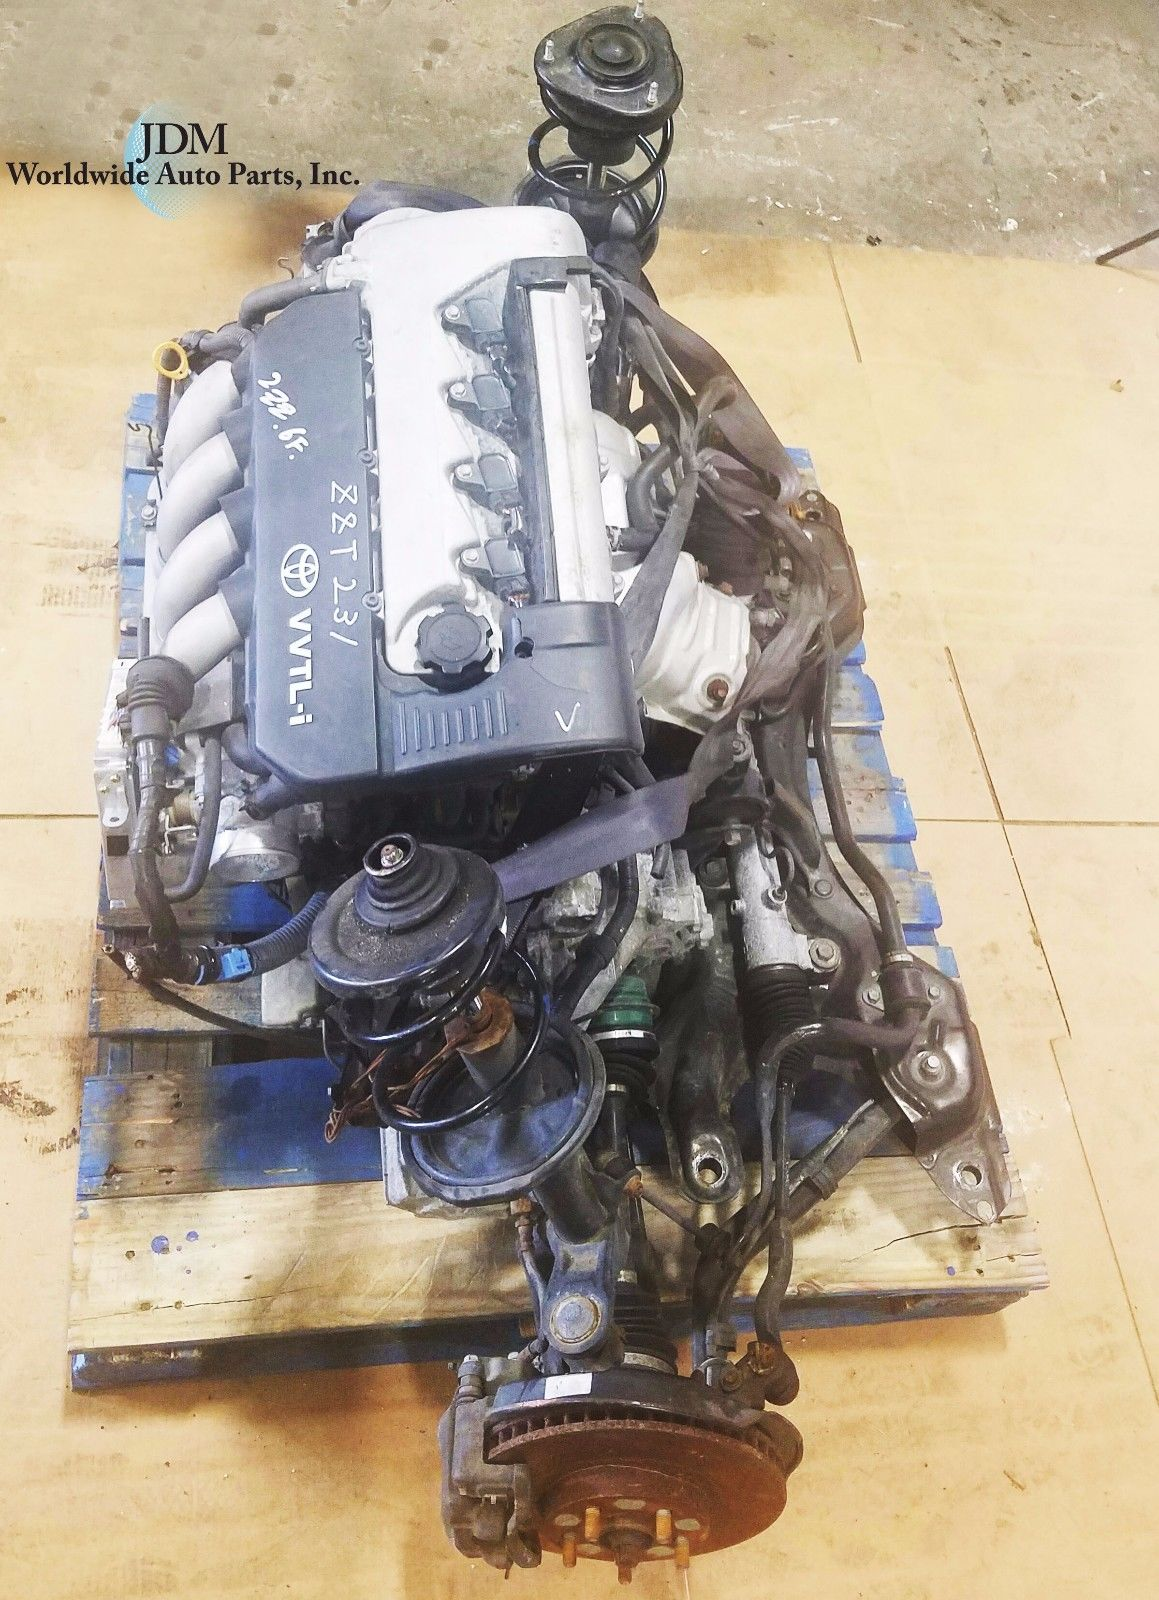 JDM 00-05 TOYOTA 2ZZ-GE ENGINE 1.8L DOHC COROLLA MATRIX VIBE 6SPEED TRANSMISSION